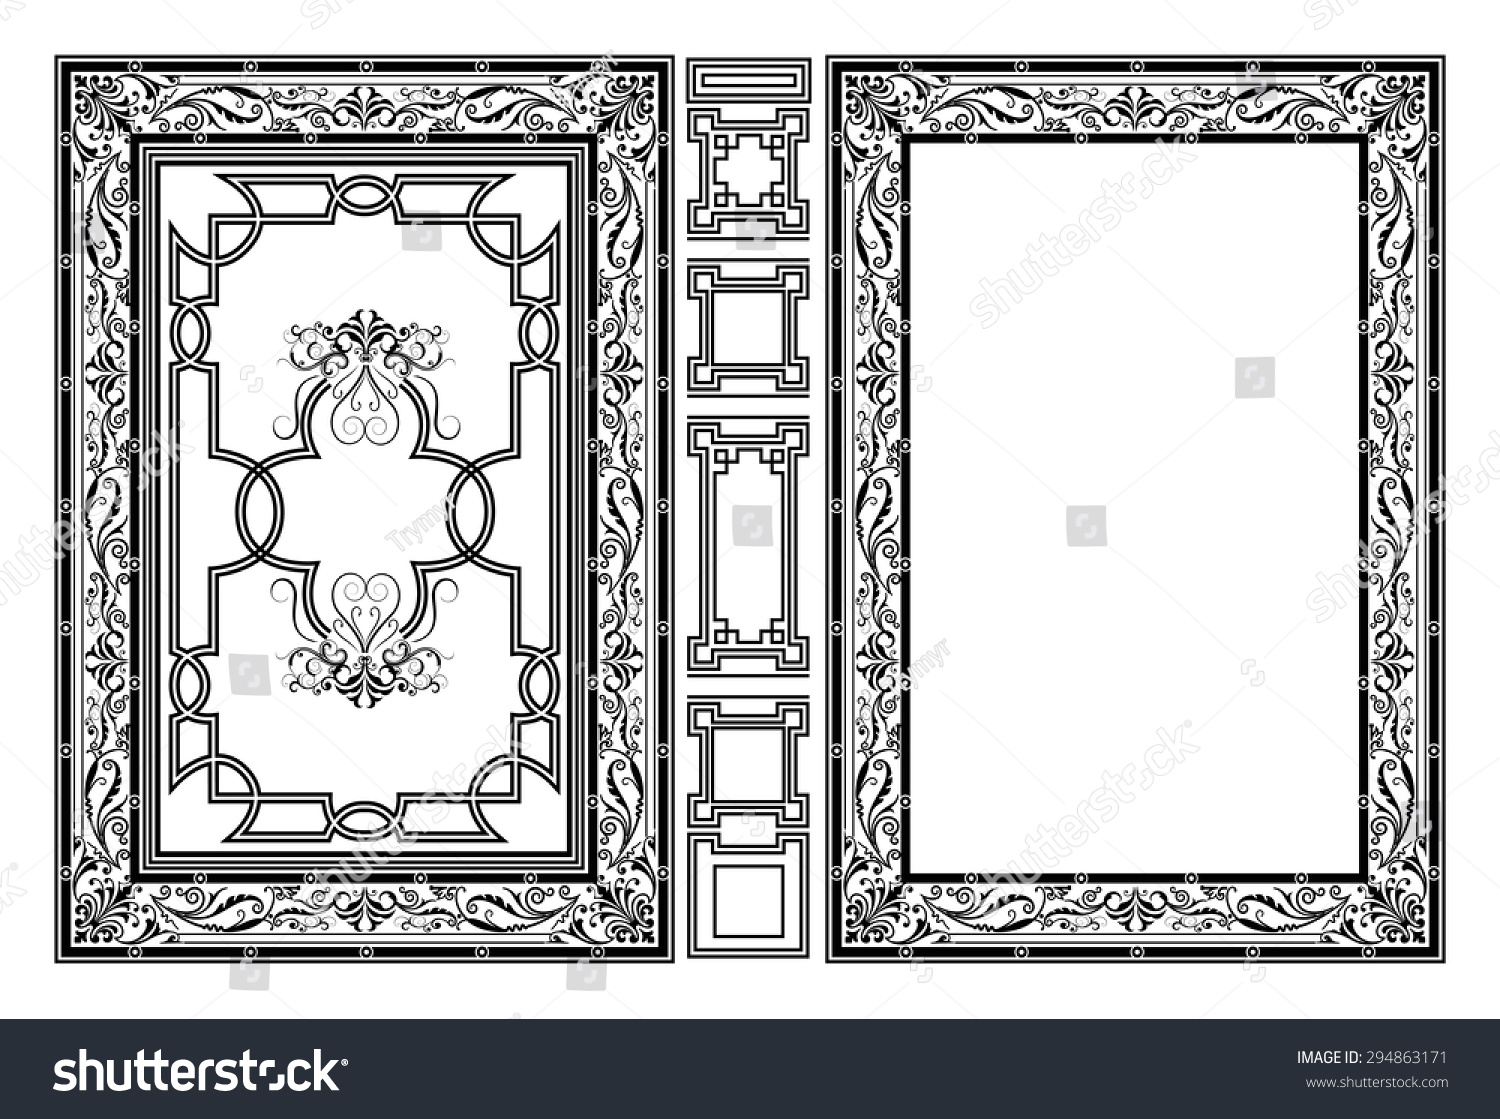 How To Make A Decorative Book Cover : Vector classical book cover decorative vintage stock